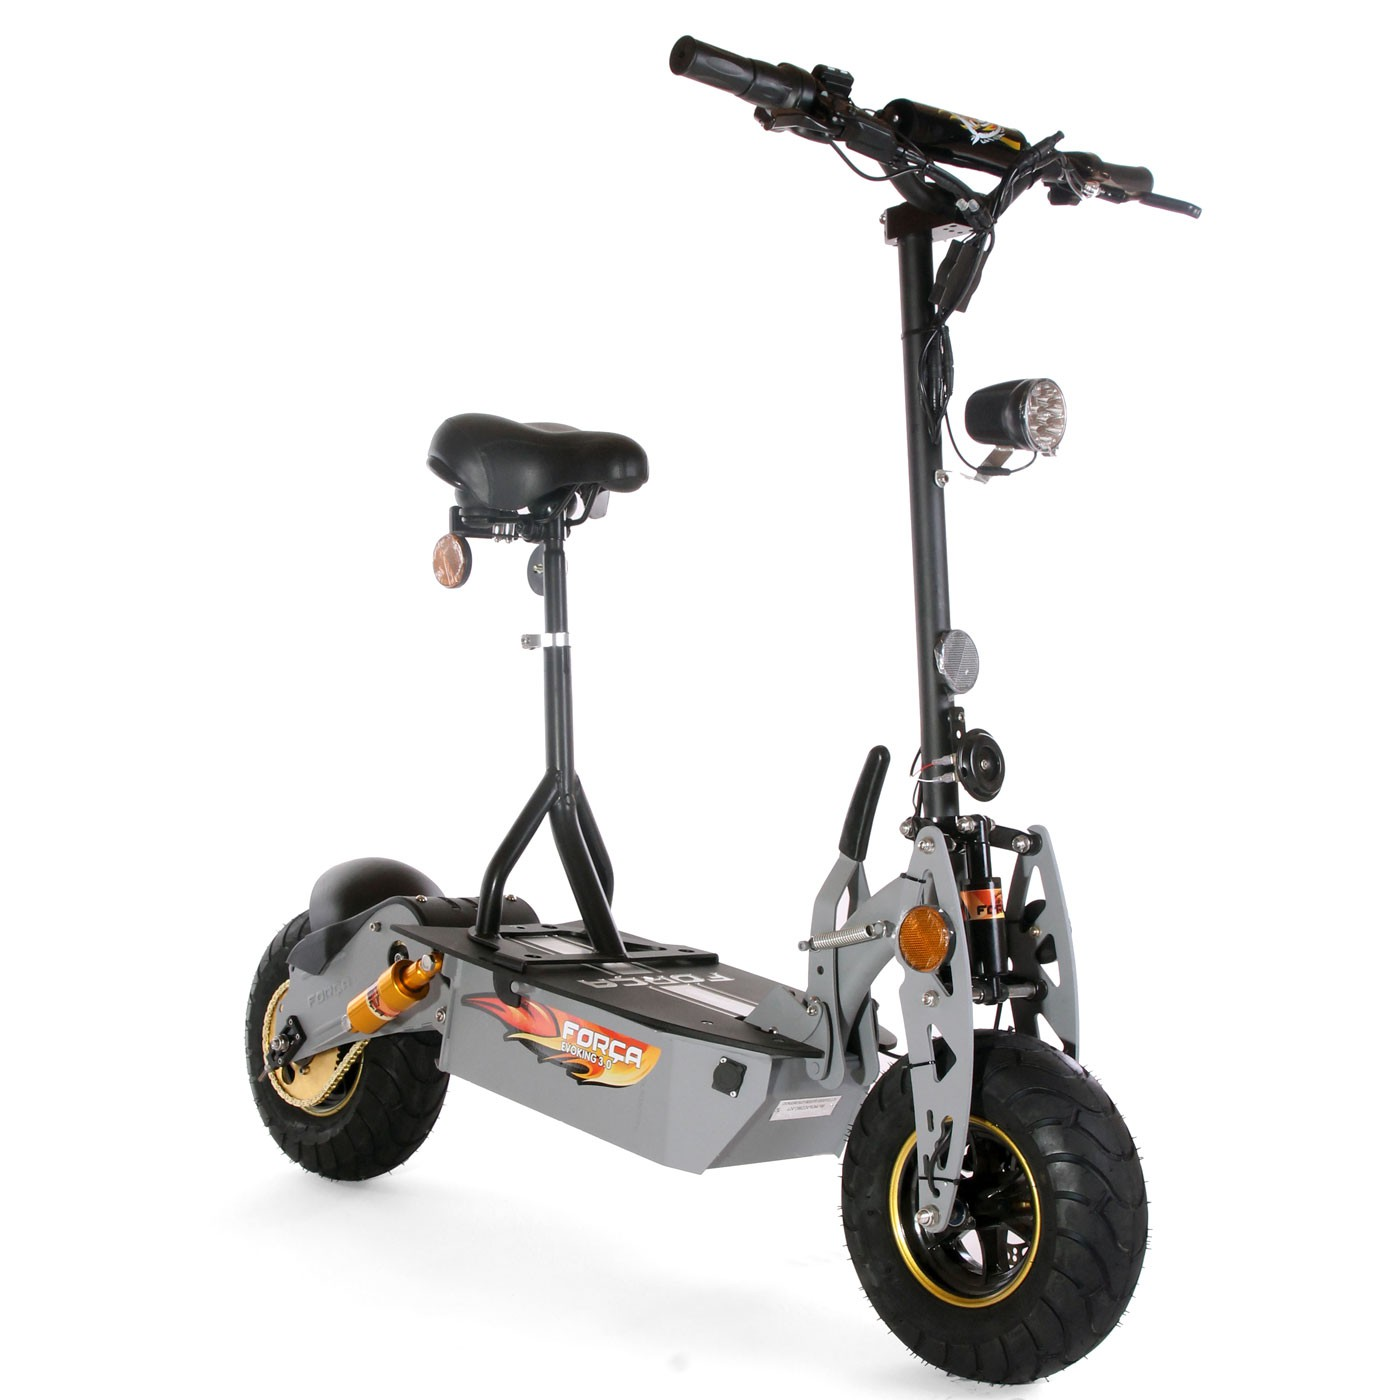 forca evoking iii vgt rs scooter highpower edition e scooter. Black Bedroom Furniture Sets. Home Design Ideas